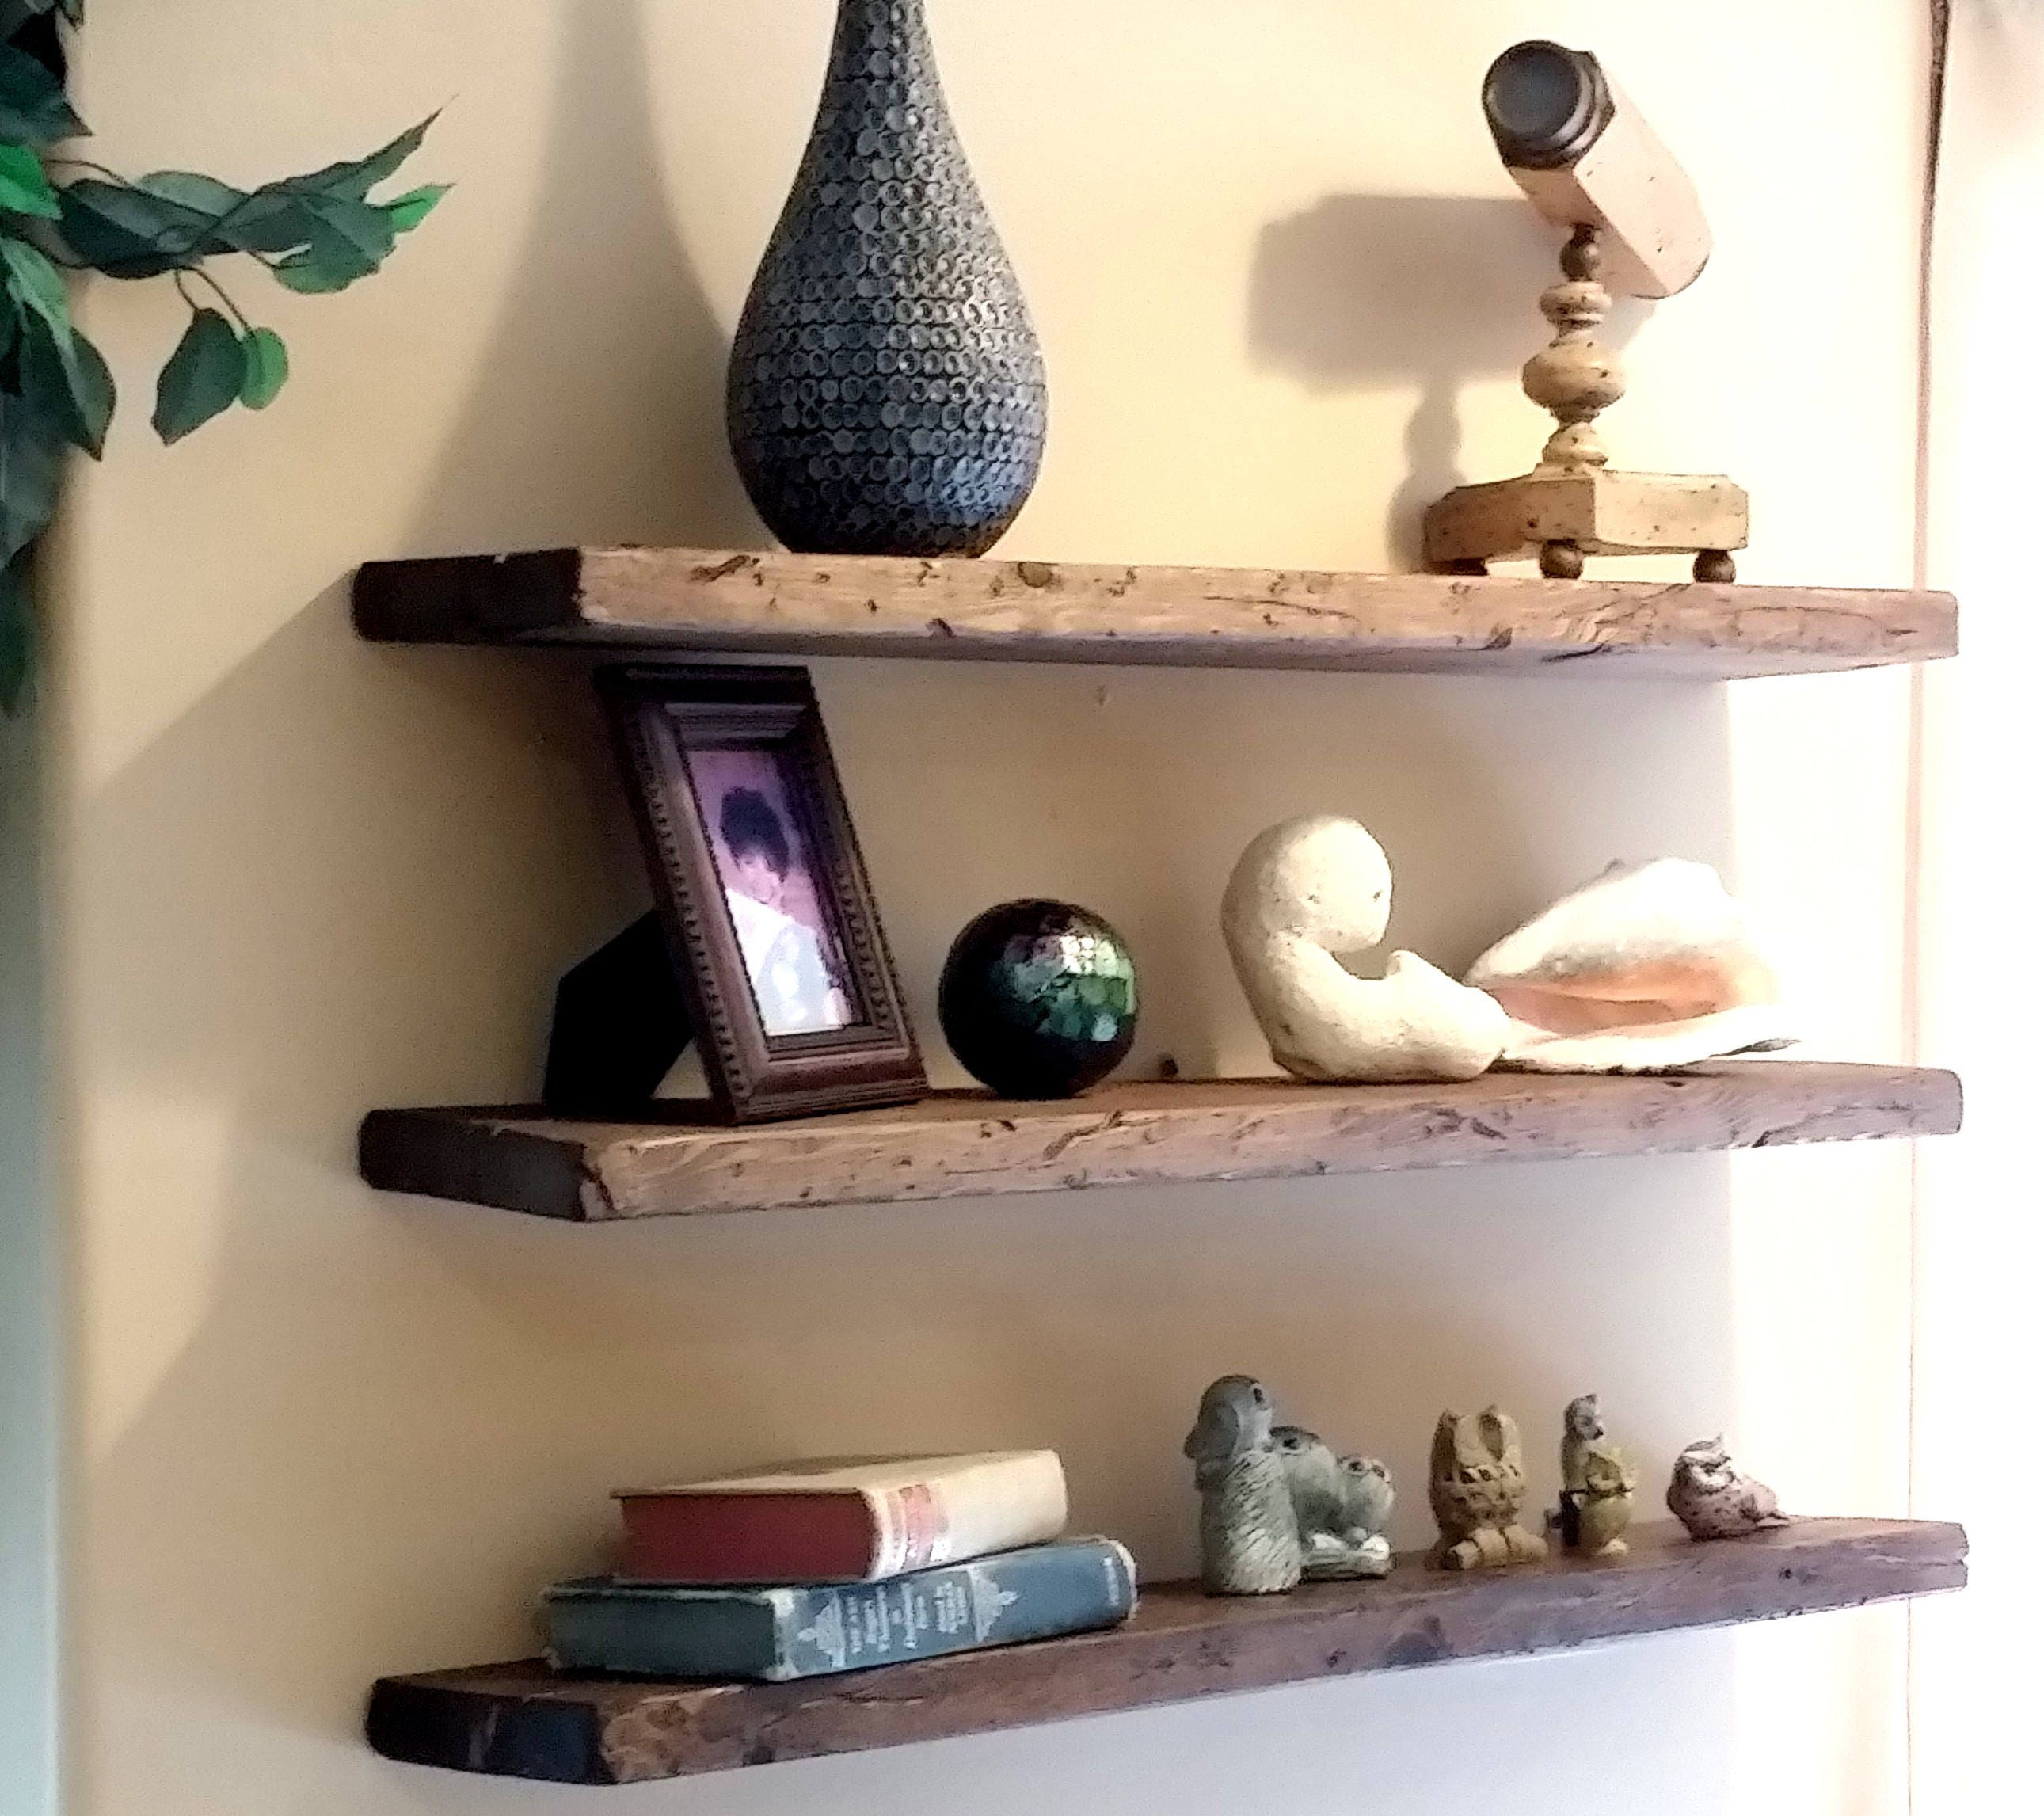 Design Wood Shelves For Walls any length floating shelves reclaimed wood shelf easy mount rustic reused solid